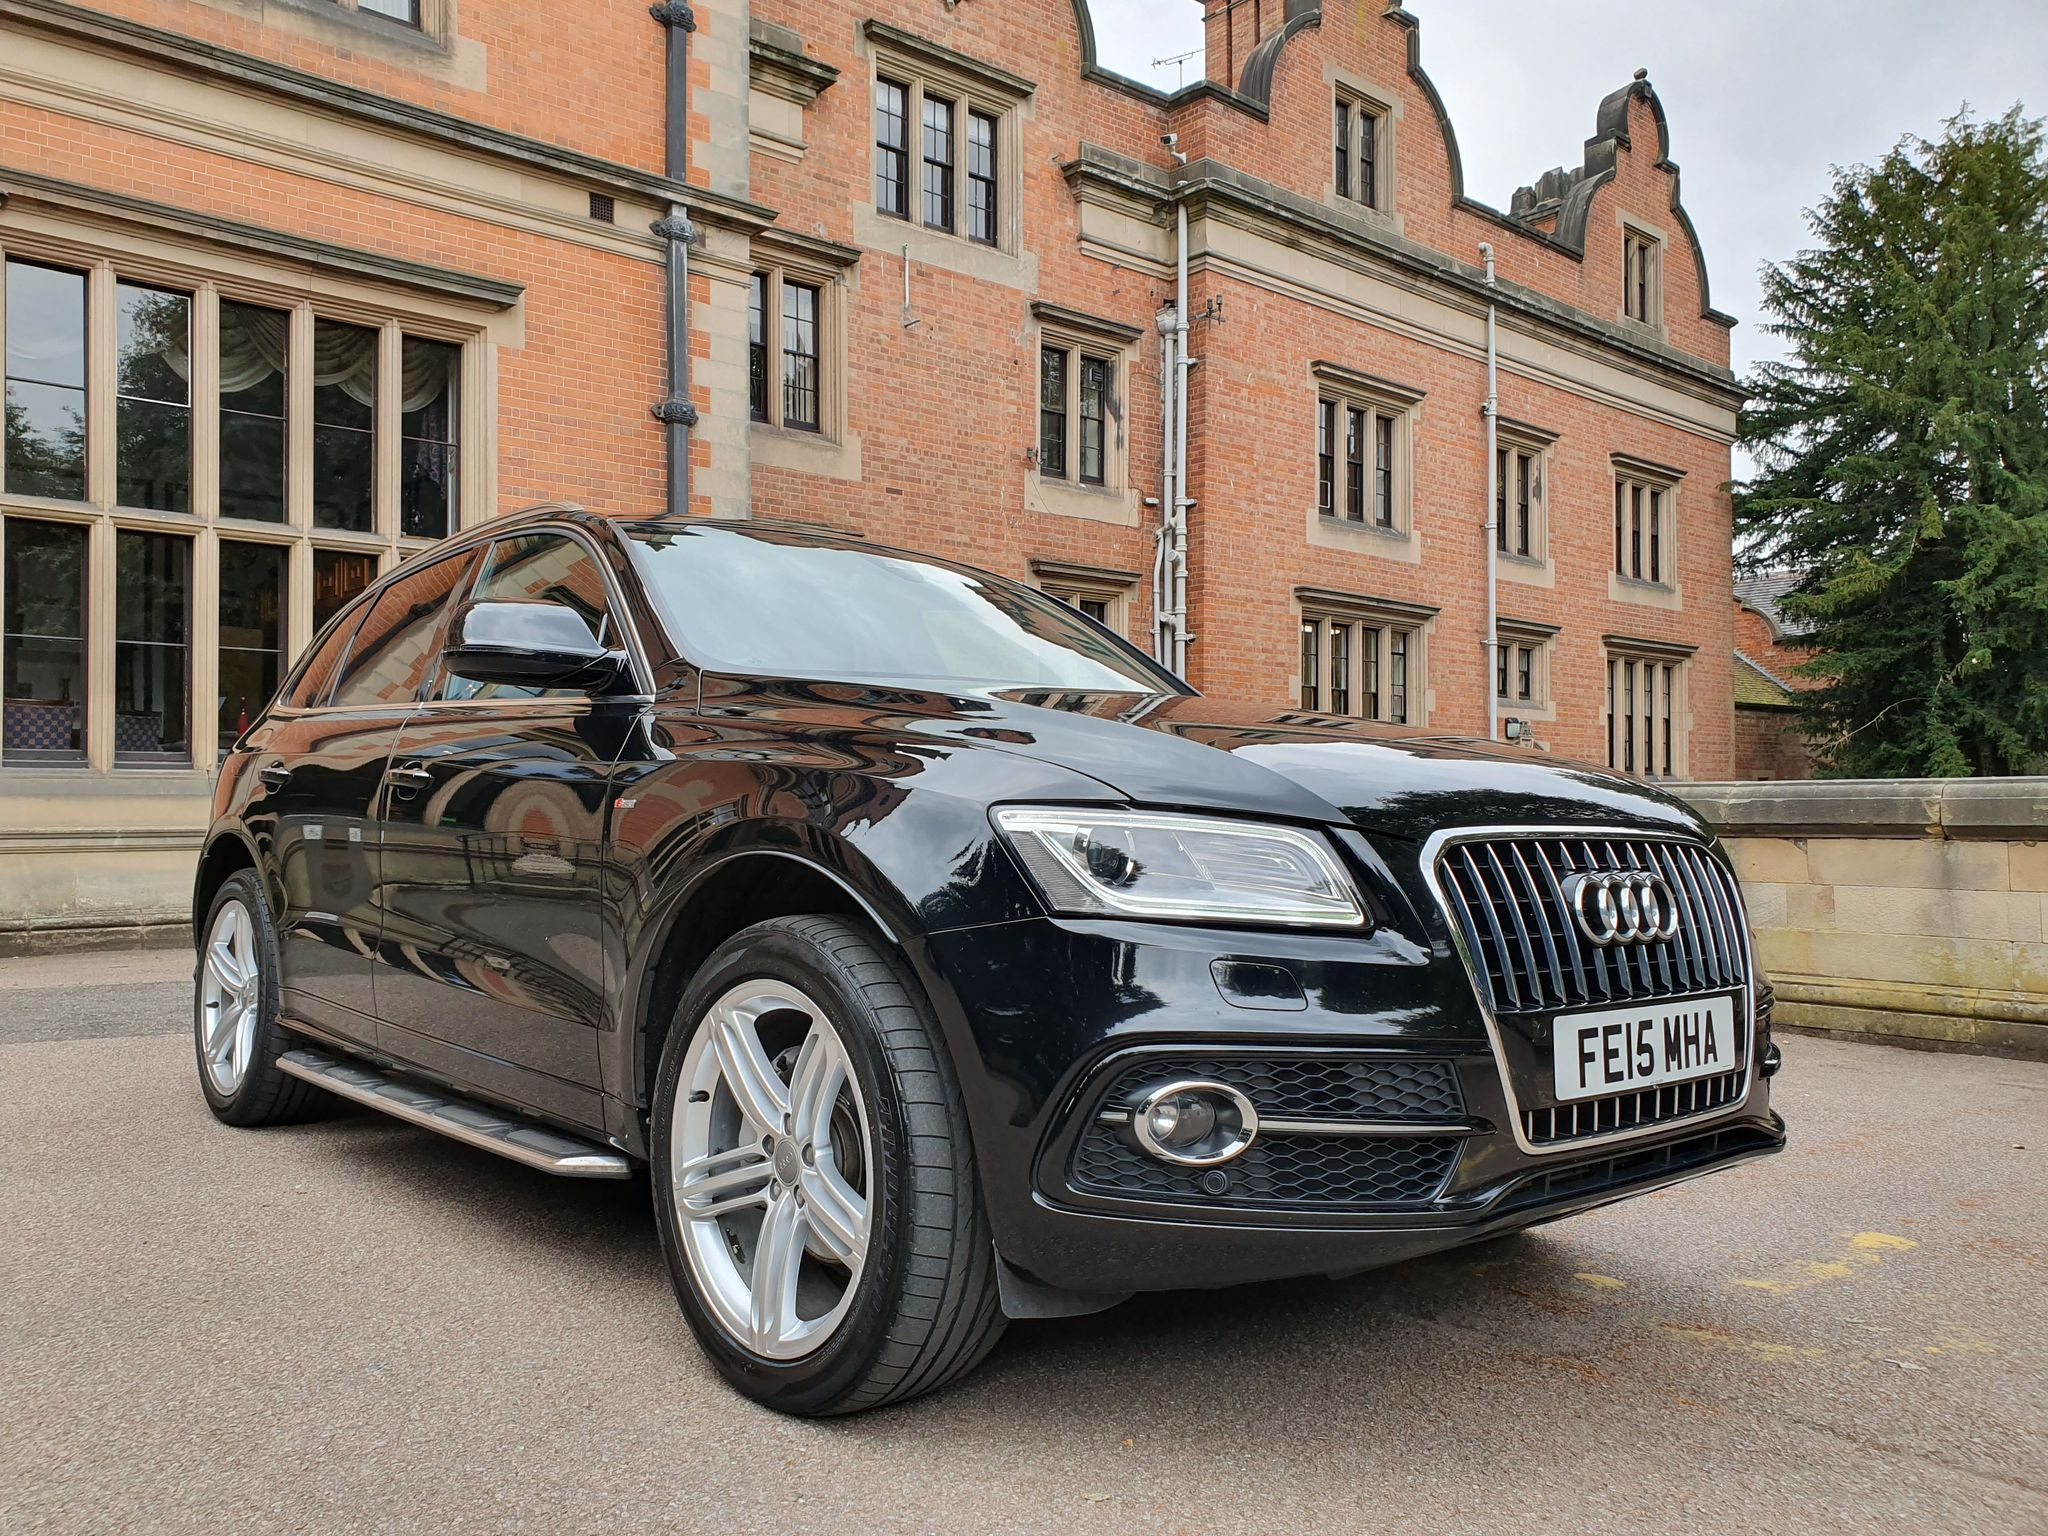 Audi Q14 used cars for sale in Nottingham on Auto Trader UK | nottingham audi used cars